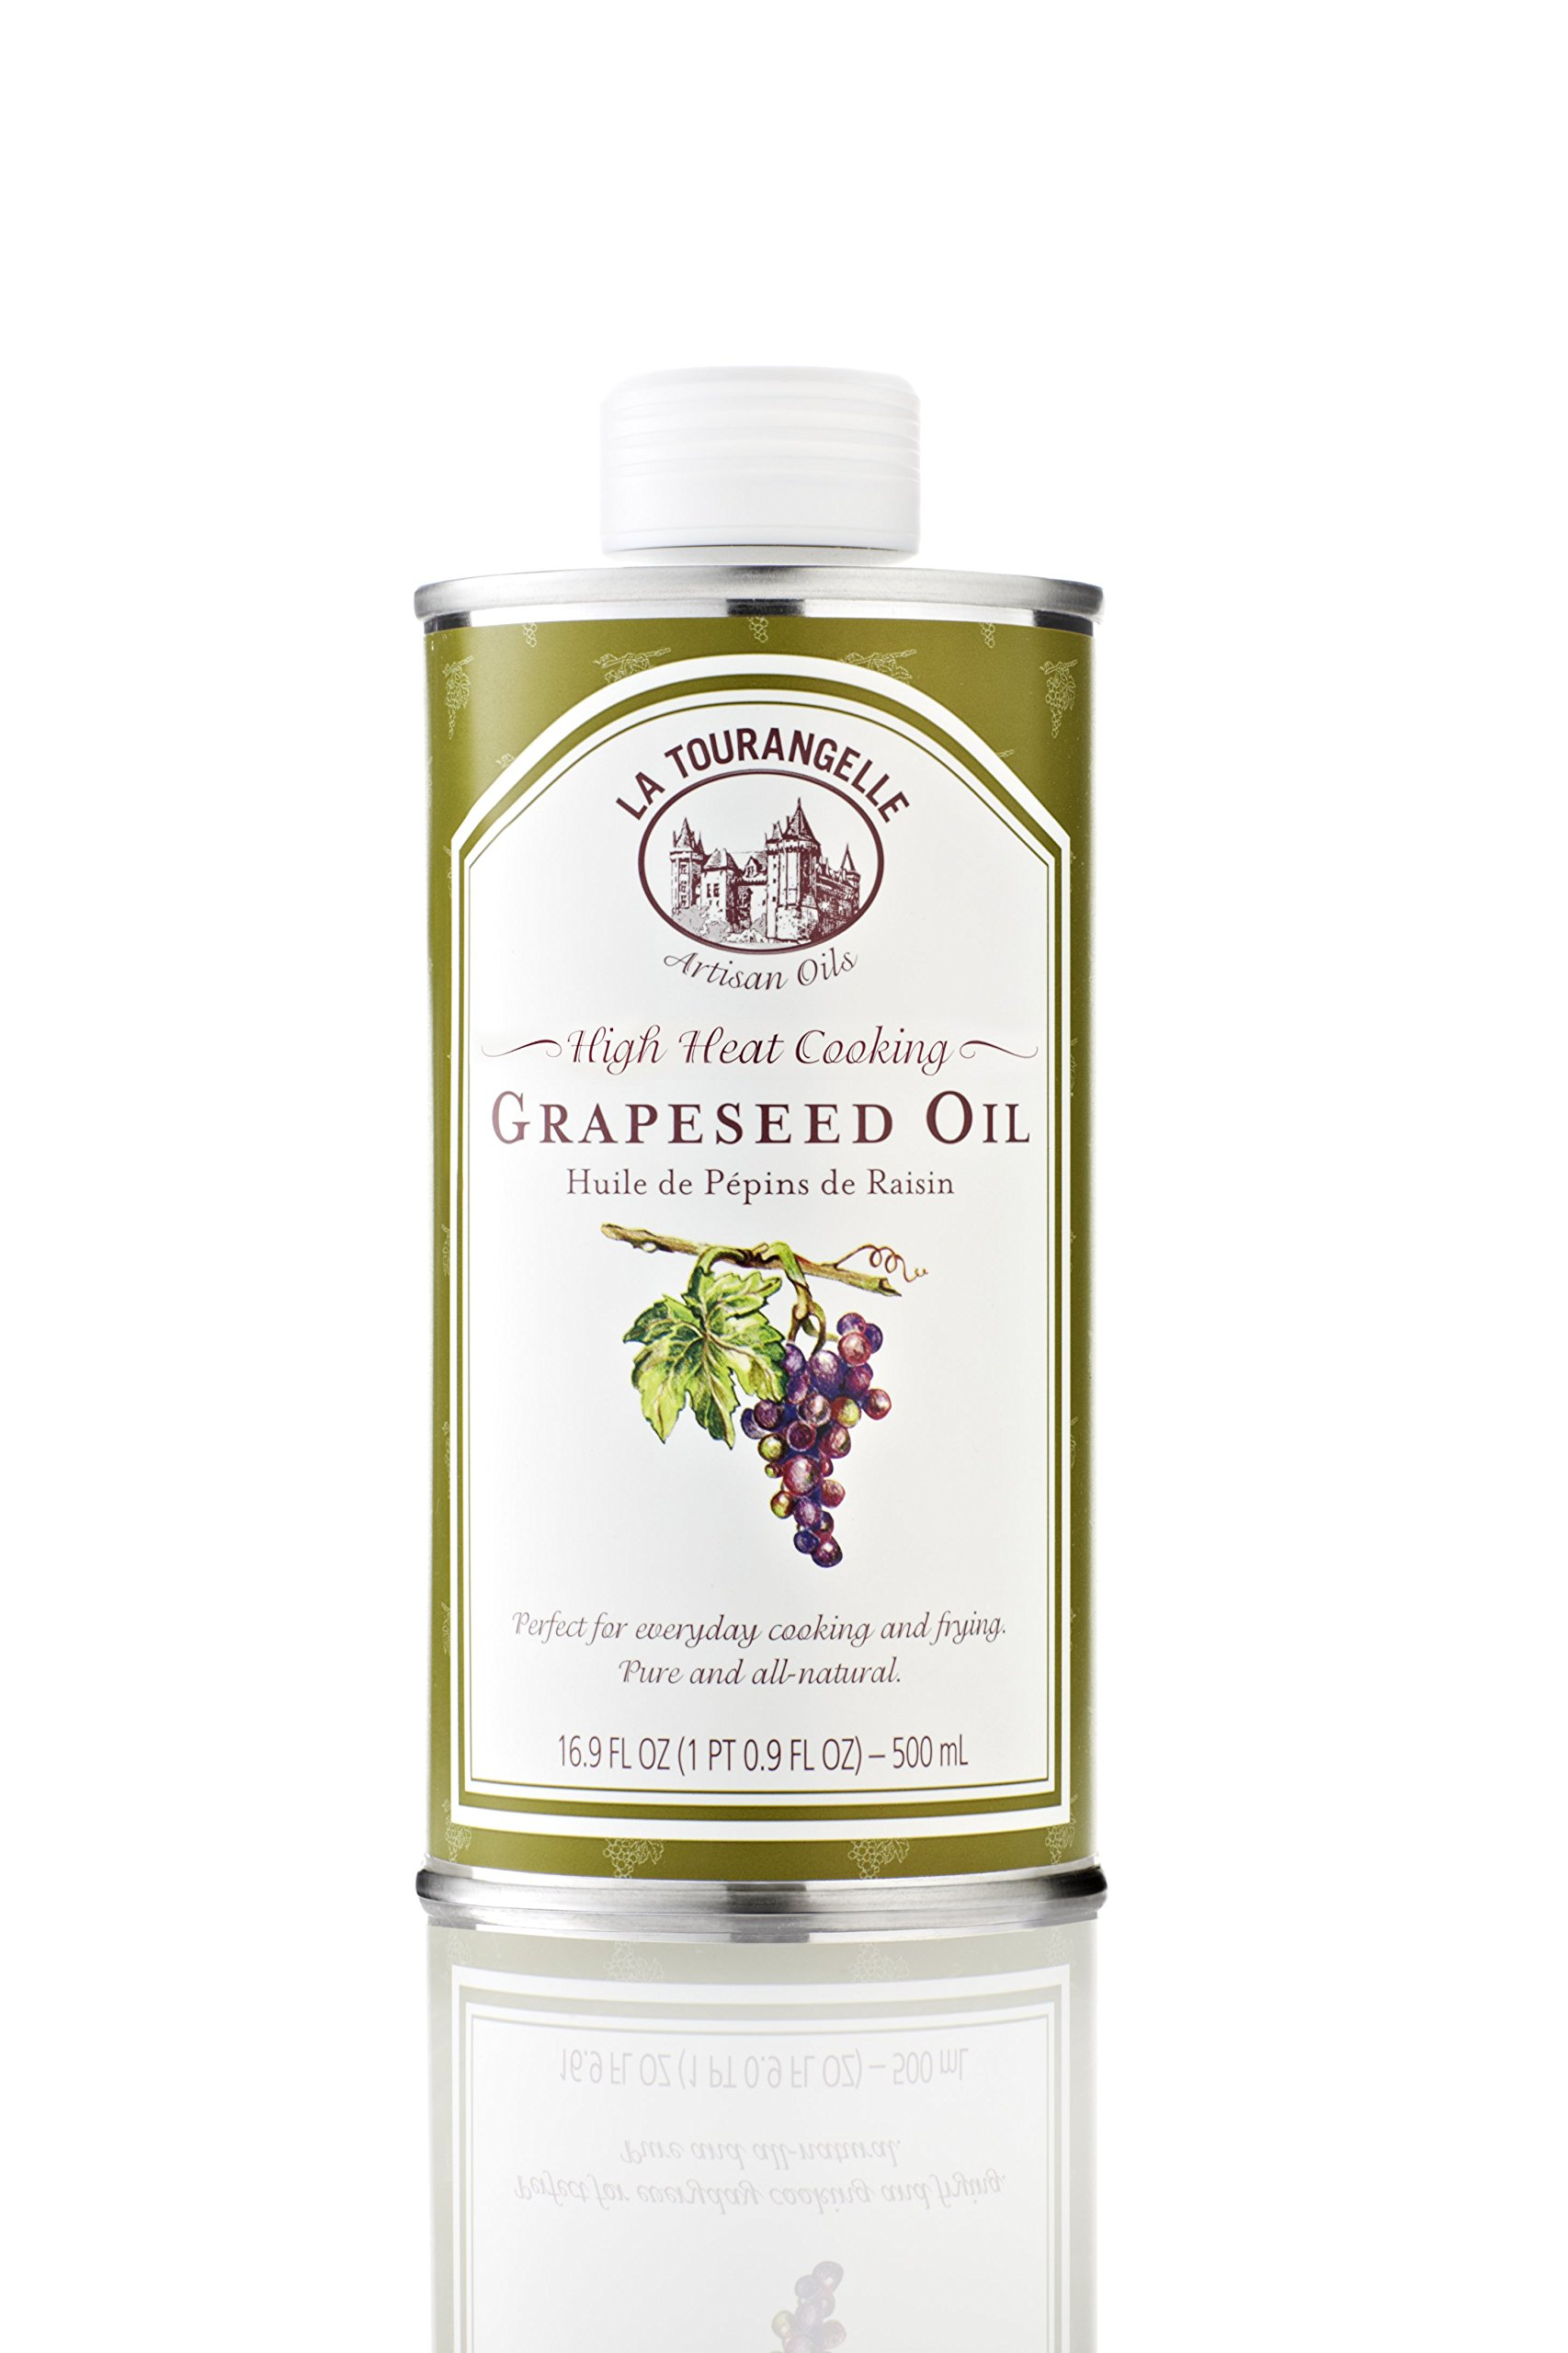 La Tourangelle Grapeseed Oil, 16.9-Ounce Cans (Pack of 3) by La Tourangelle